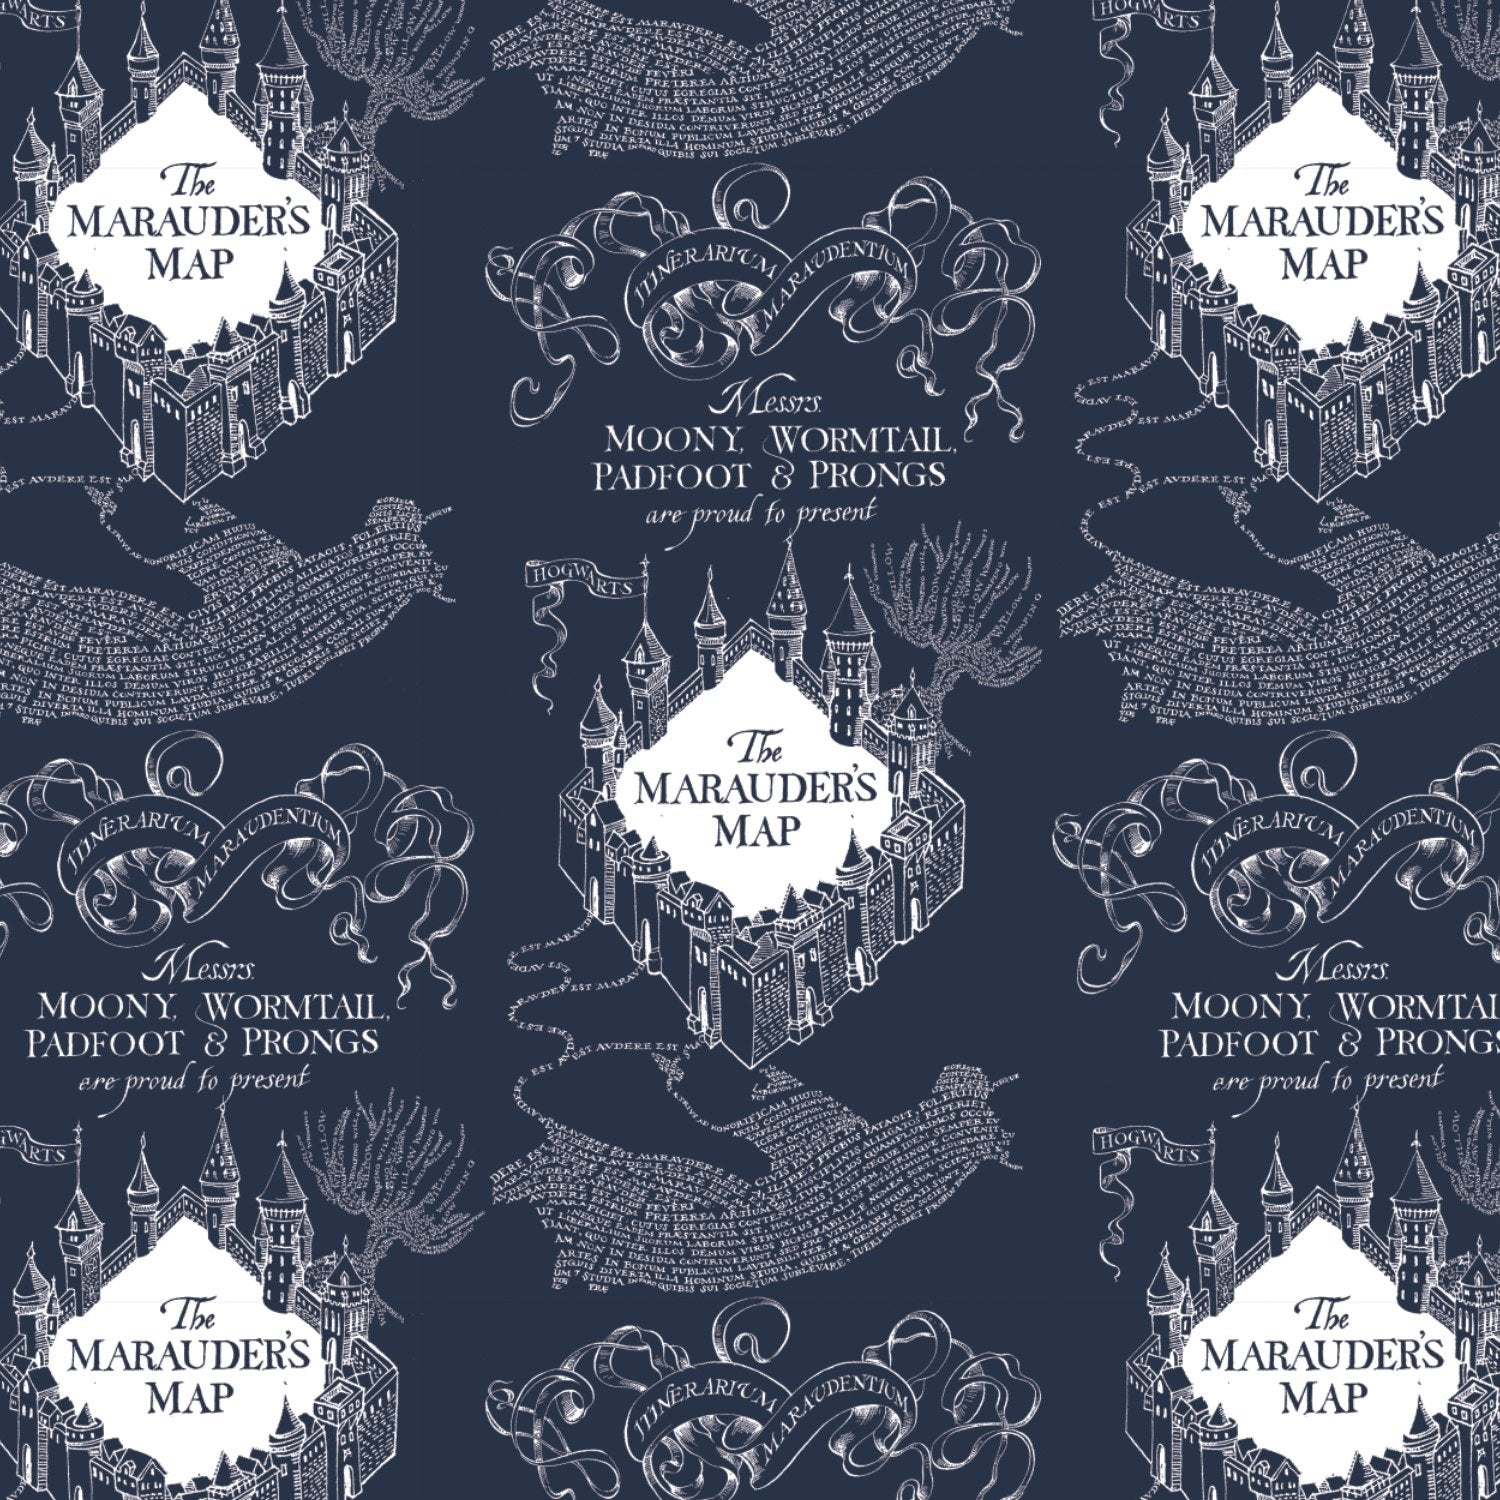 Mauraders Map - Printed Flannel From Harry Potter and Wizarding World - Dark Blue